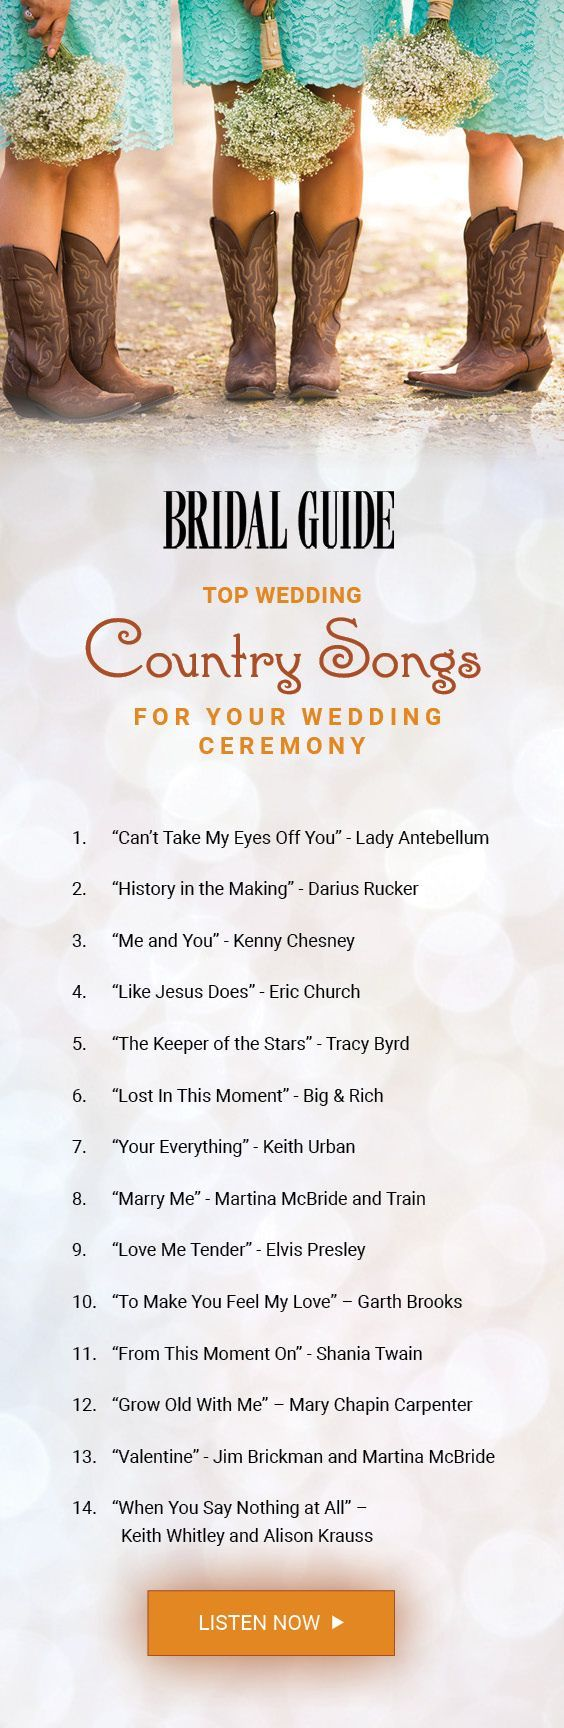 Top country songs to play during your wedding ceremony! #WeddingRustic